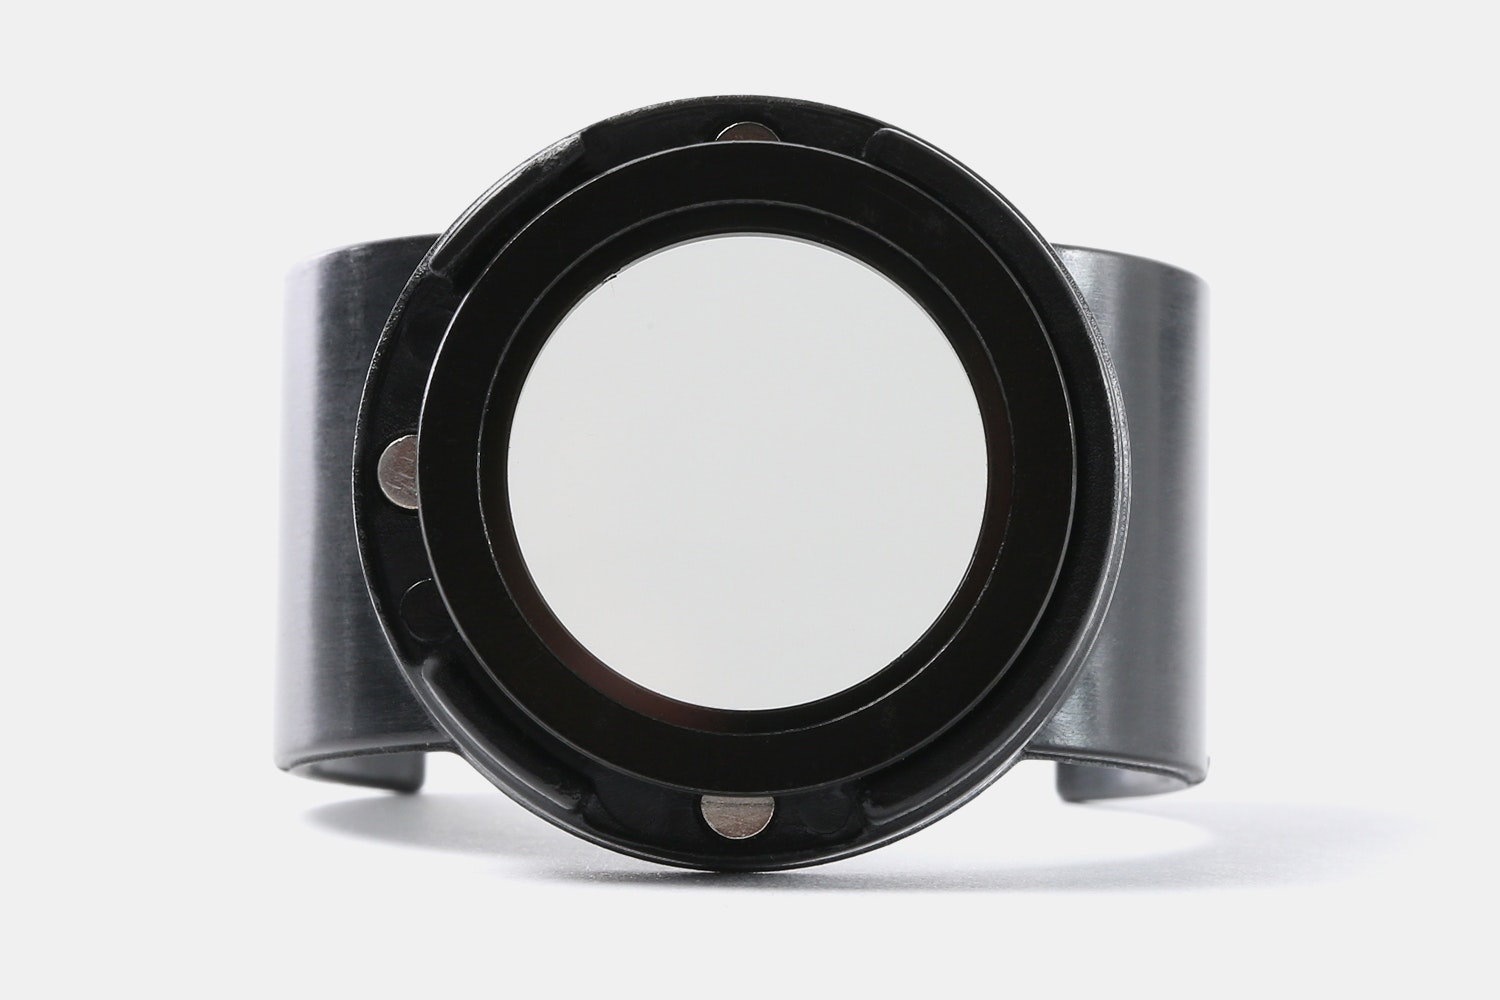 BlackVue DR Series CPL Filter